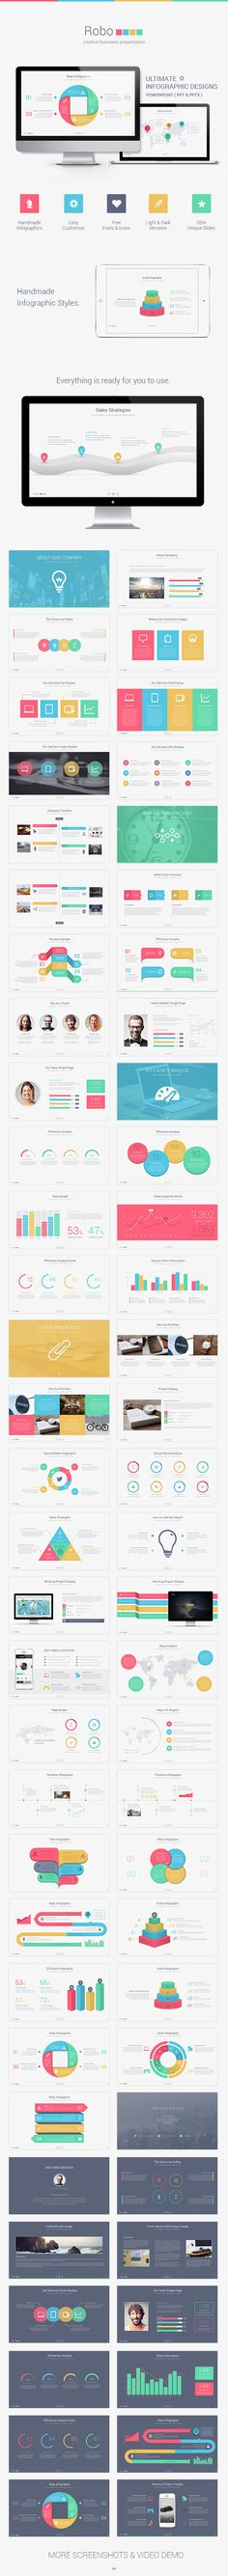 Buy Robo Powerpoint Presentation Template by VigitalArt on GraphicRiver. Robo is very useful, creative, clean, multi-purpose Business Presentation Template. You can use our presentation with. Marketing Presentation, Business Presentation Templates, Corporate Presentation, Presentation Layout, Business Powerpoint Templates, Creative Powerpoint, Keynote Template, Presentation Slides, Portfolio Presentation